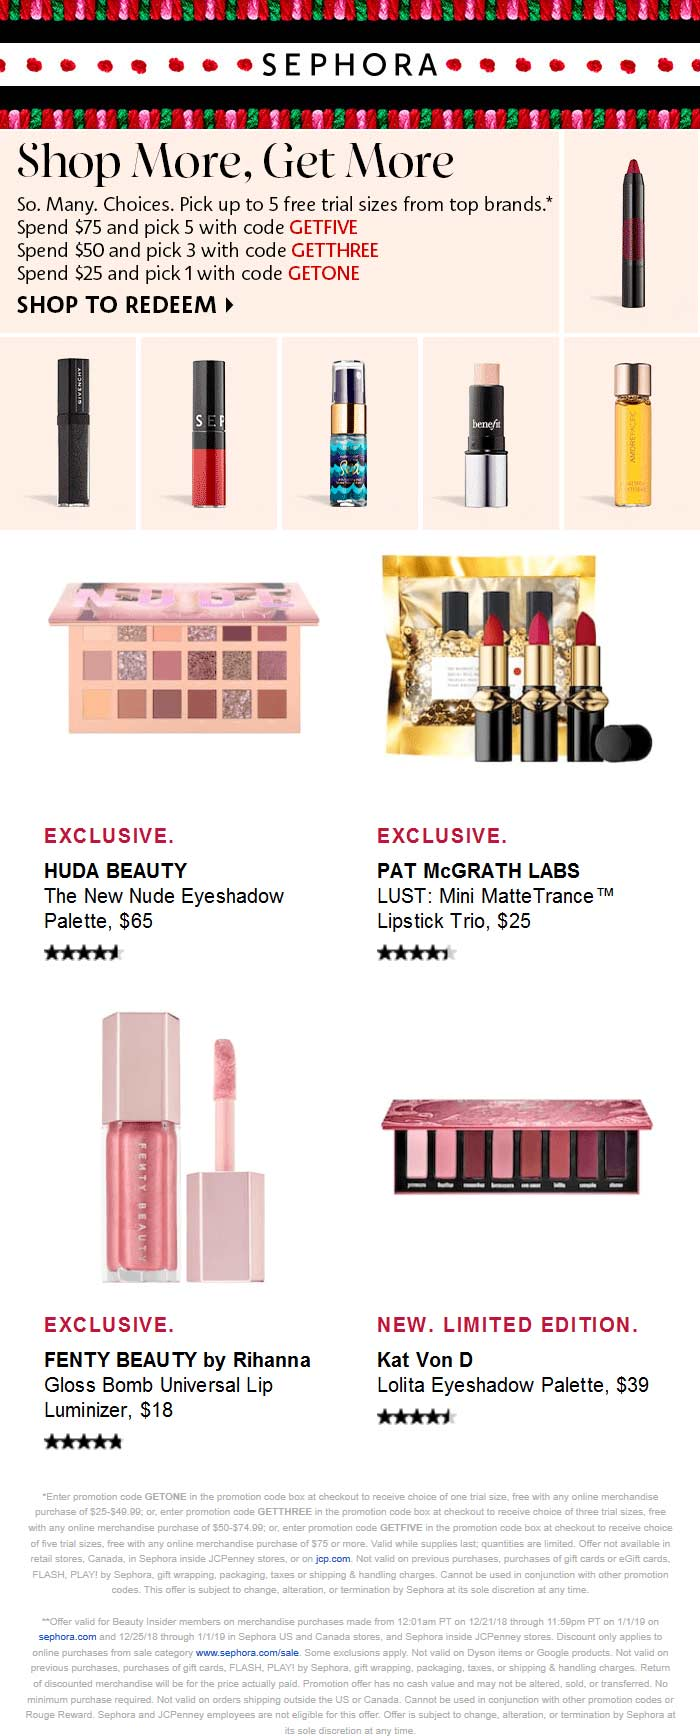 Sephora Coupon August 2019 20% off sale items at Sephora, ditto online